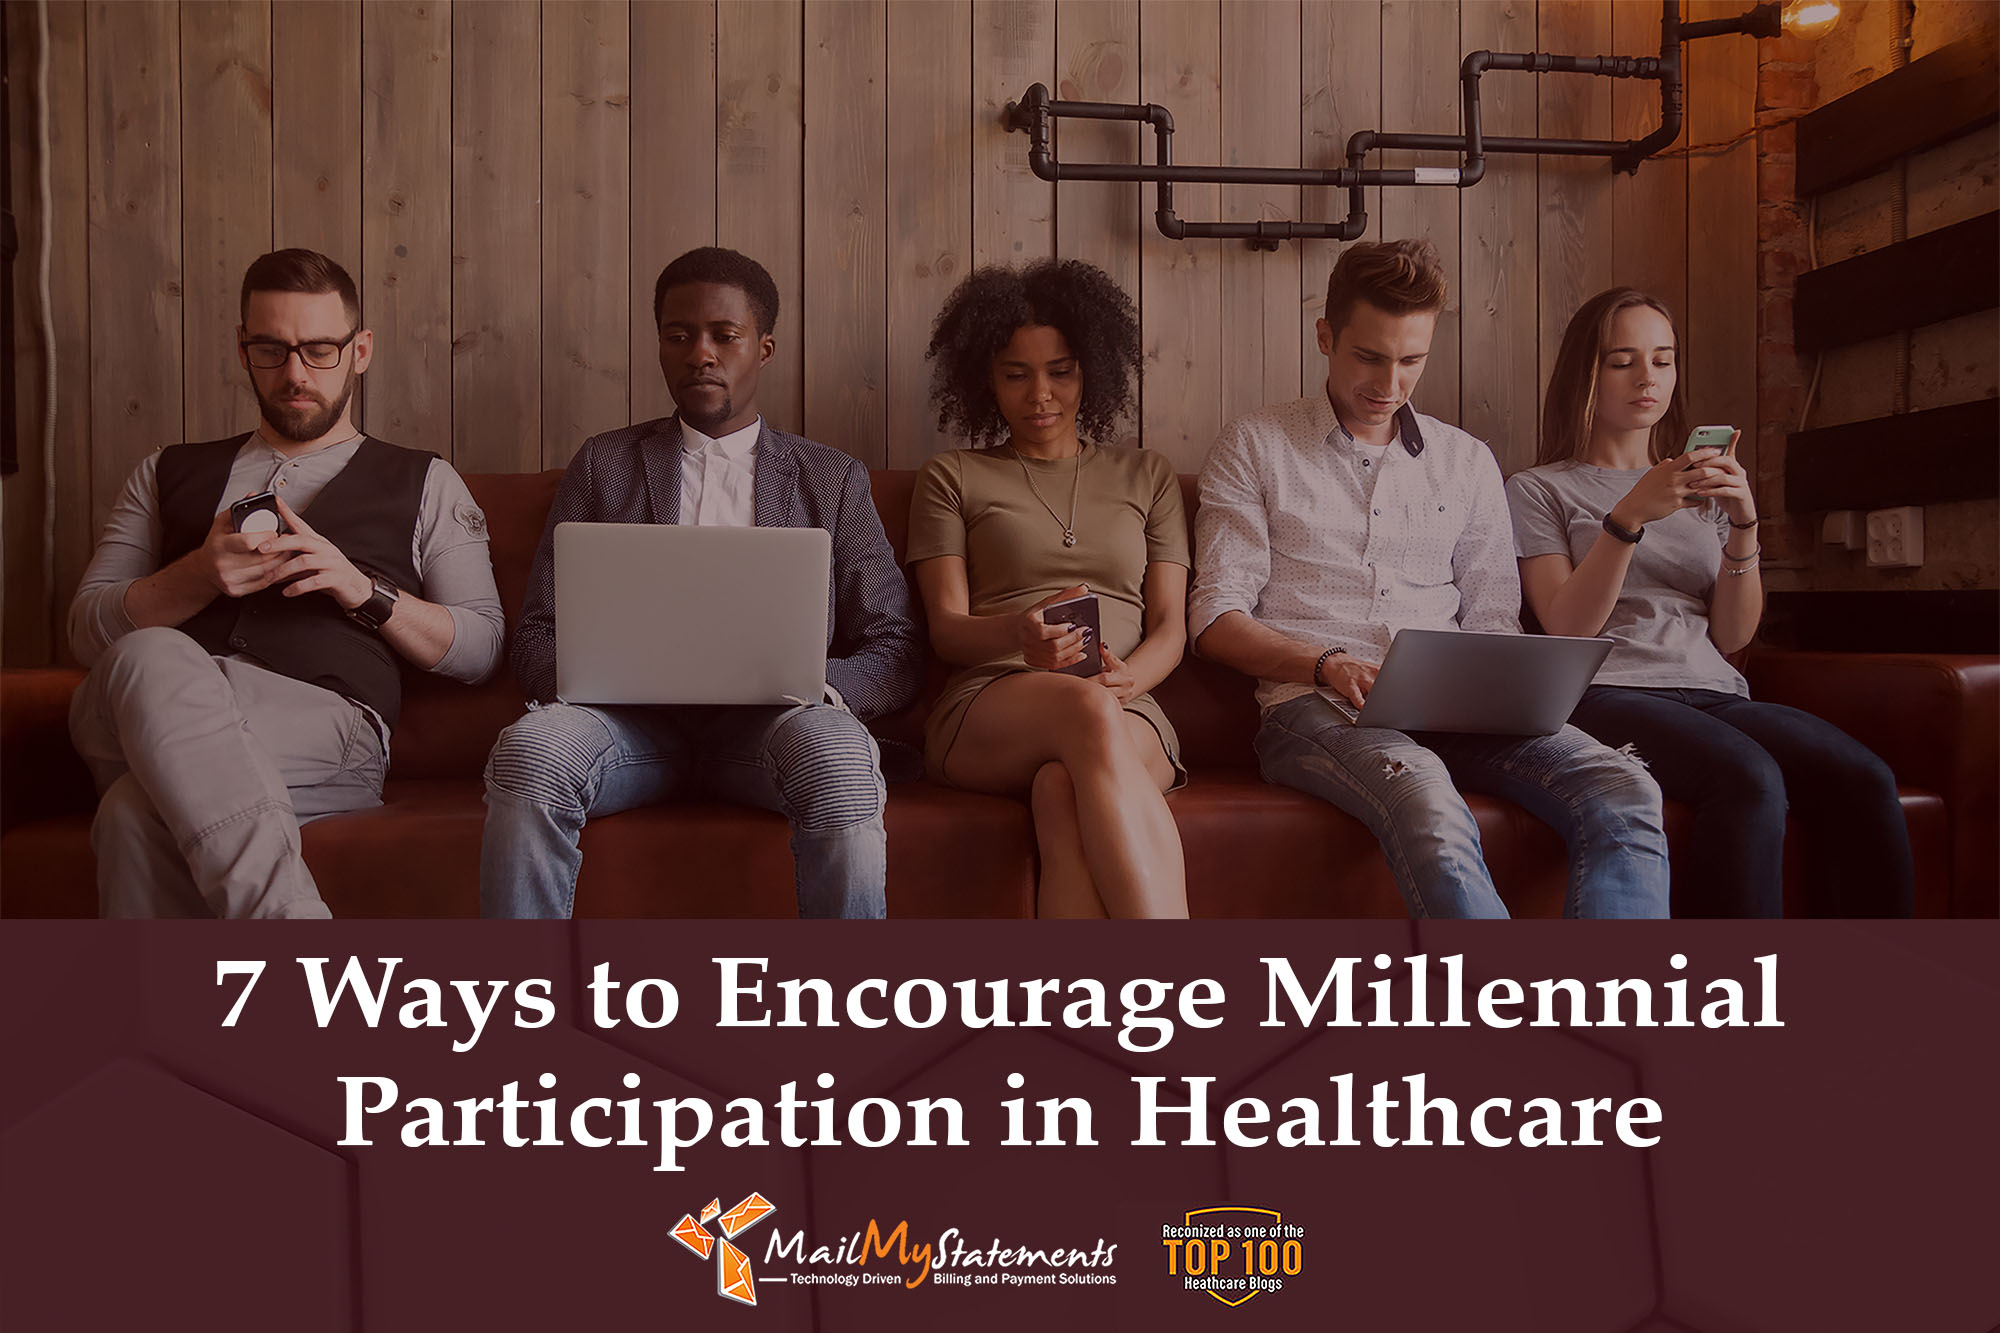 7 Ways to Encourage Millennial Participation in Healthcare